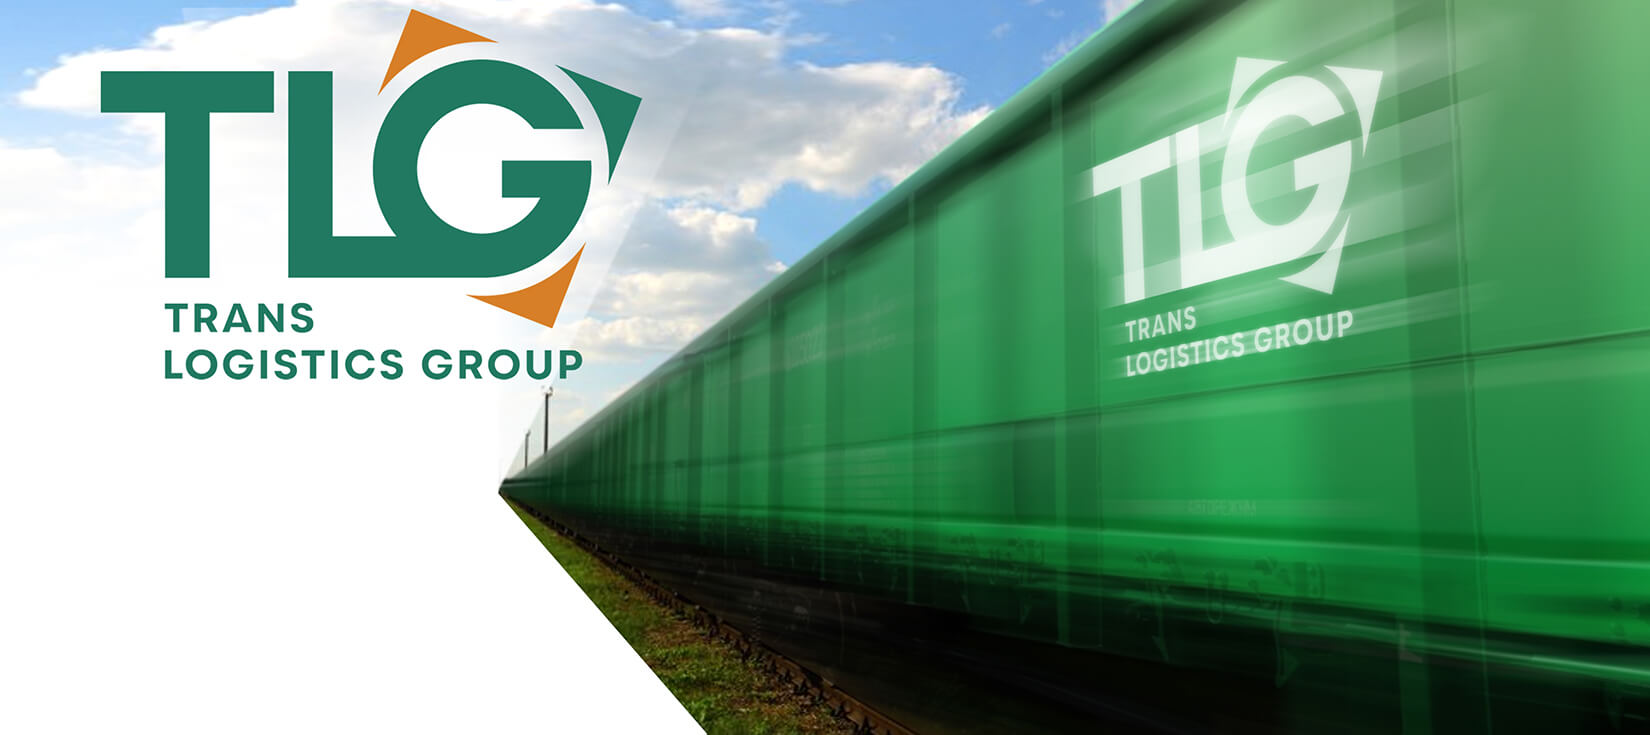 Trans Logistics Group